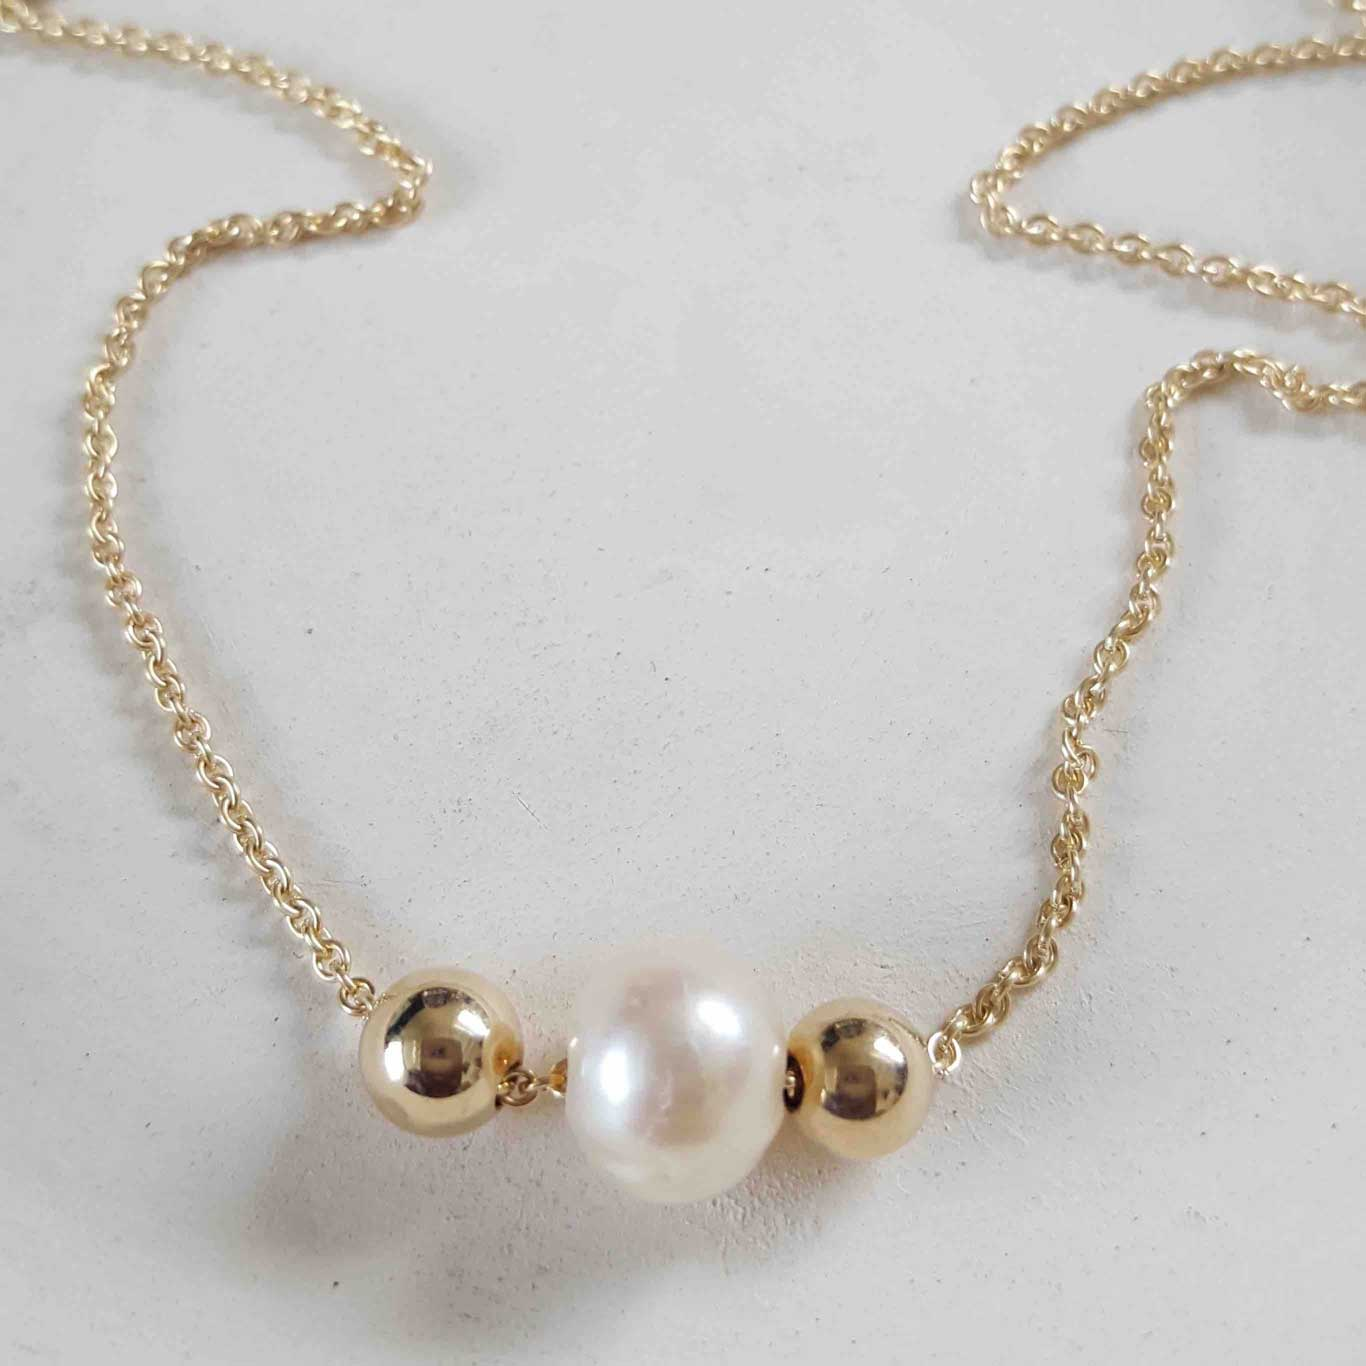 Gold ball necklace | Pearl |Minimalistic collection - Summer Gems